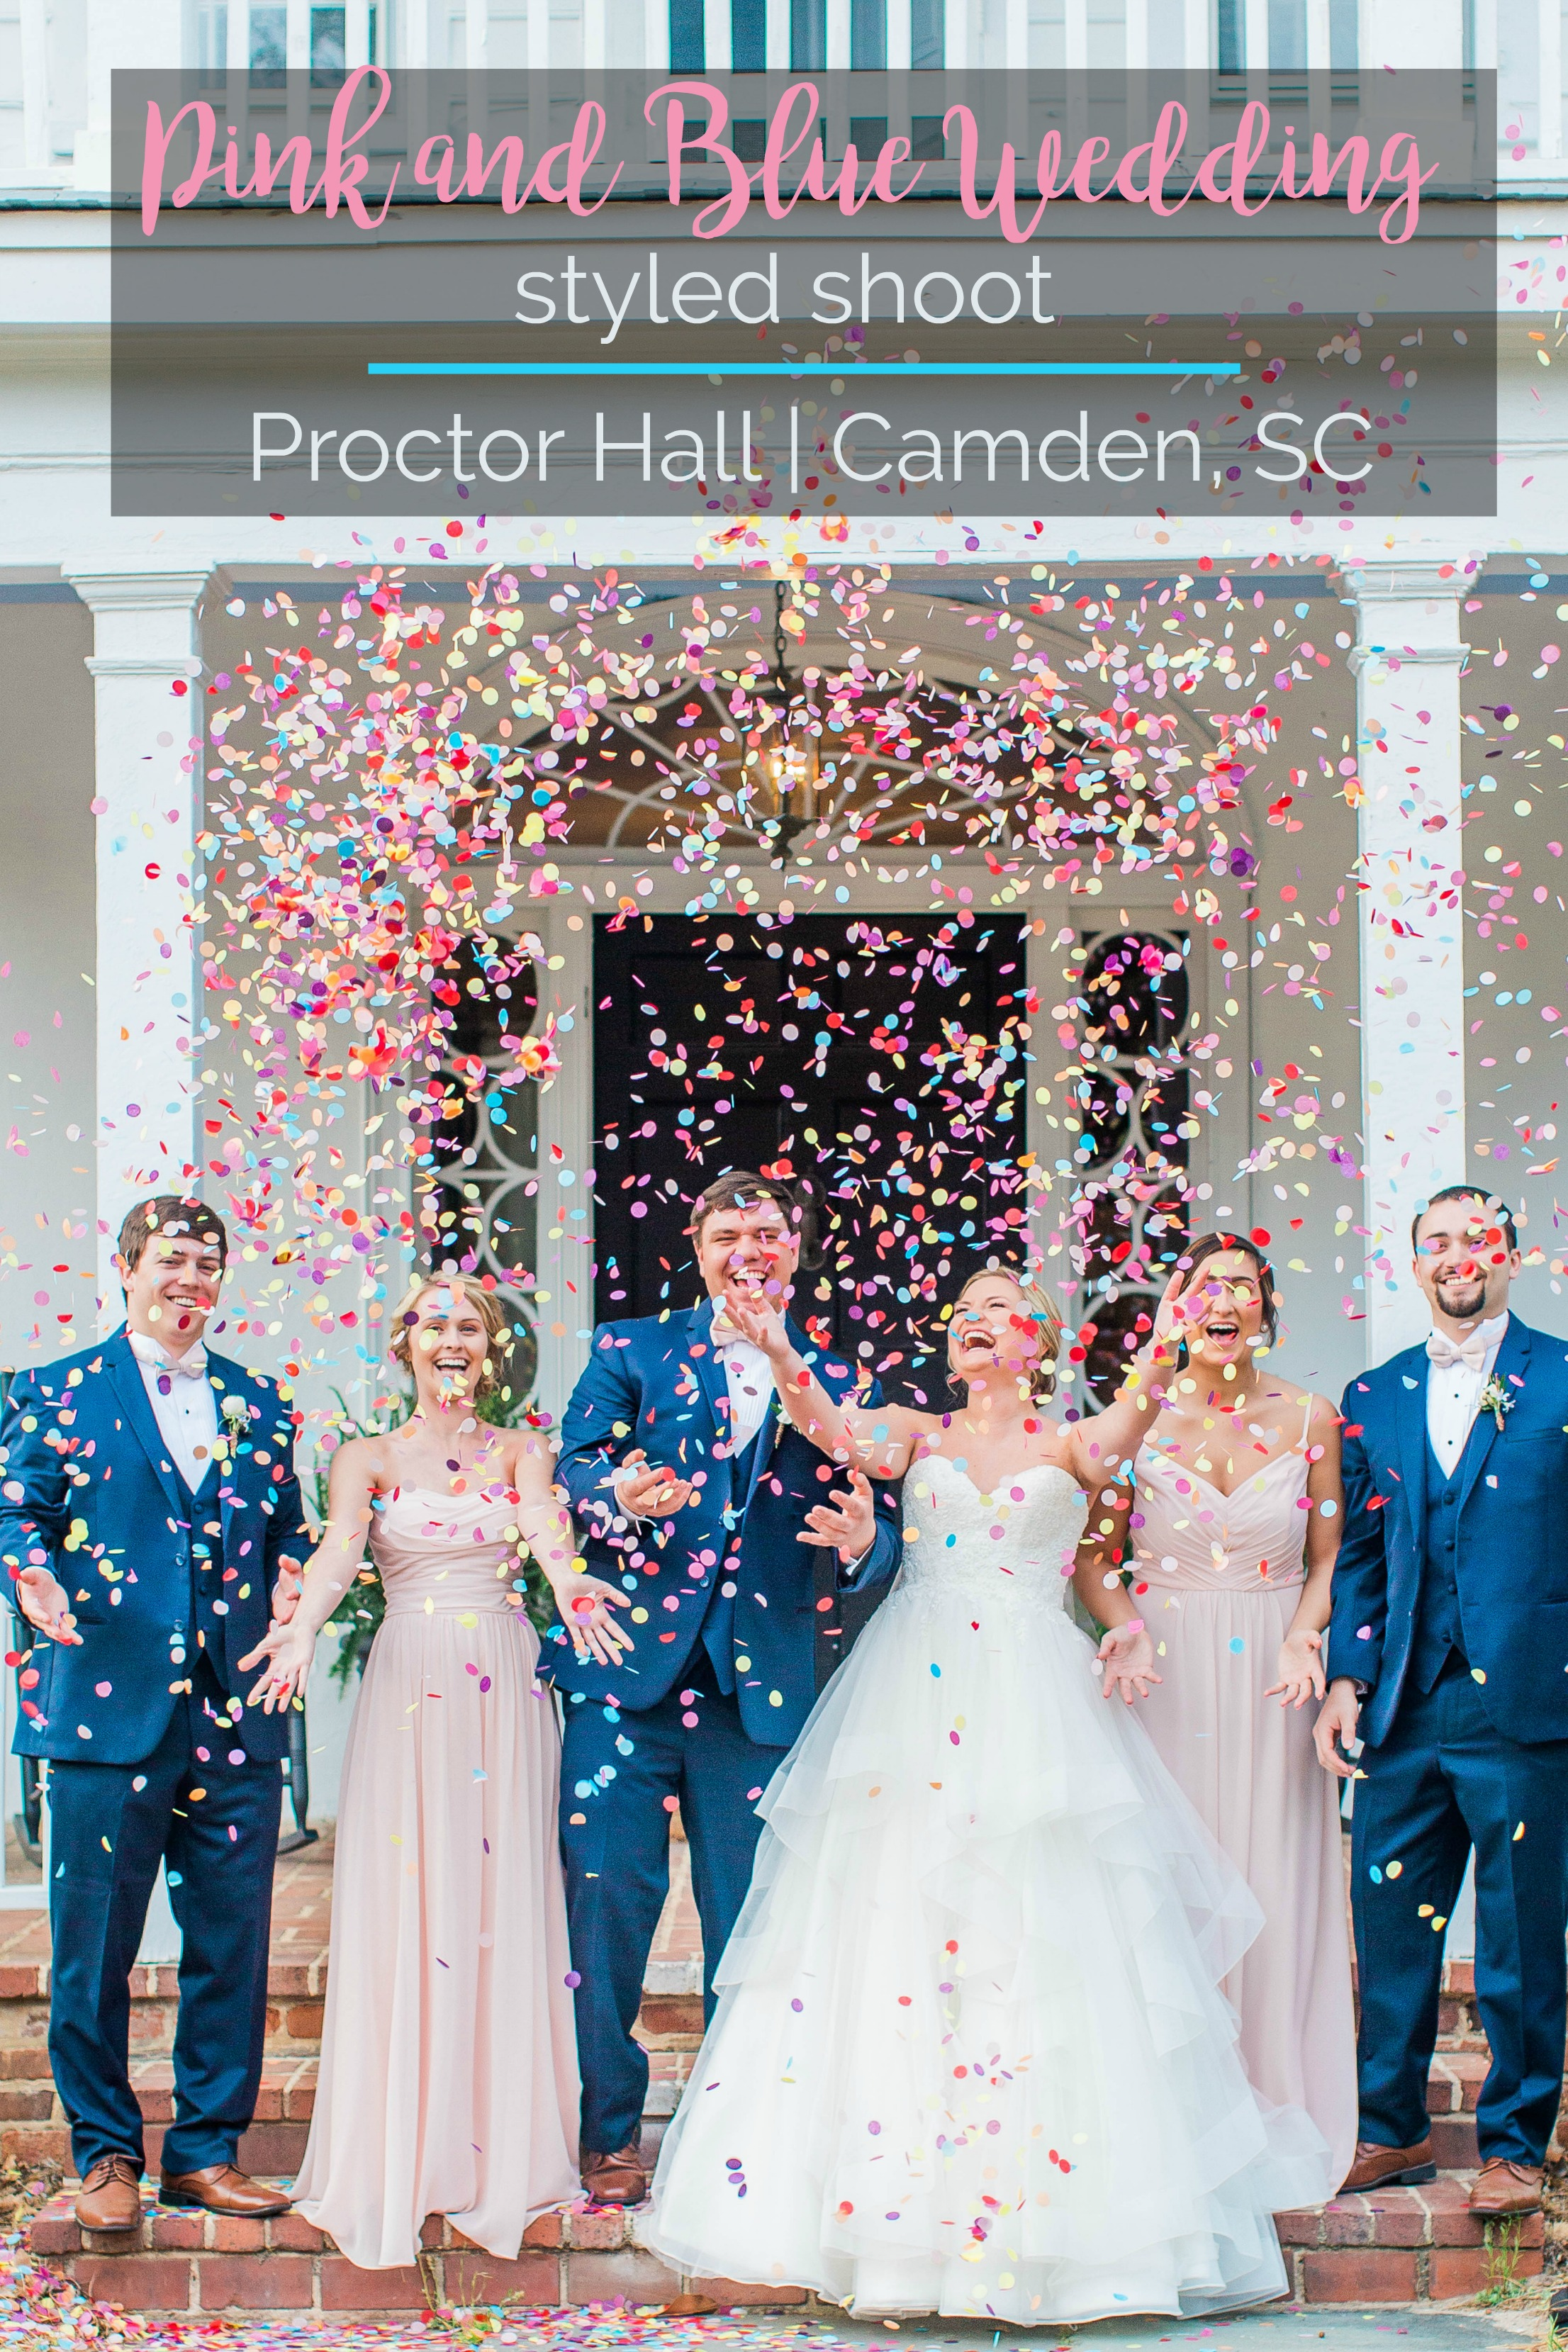 Wedding Inspiration: Pink and Blue Wedding Styled Shoot at Proctor Hall, Camden, South Carolina   Palmetto State Weddings   Photography by Heather Proctor Photography